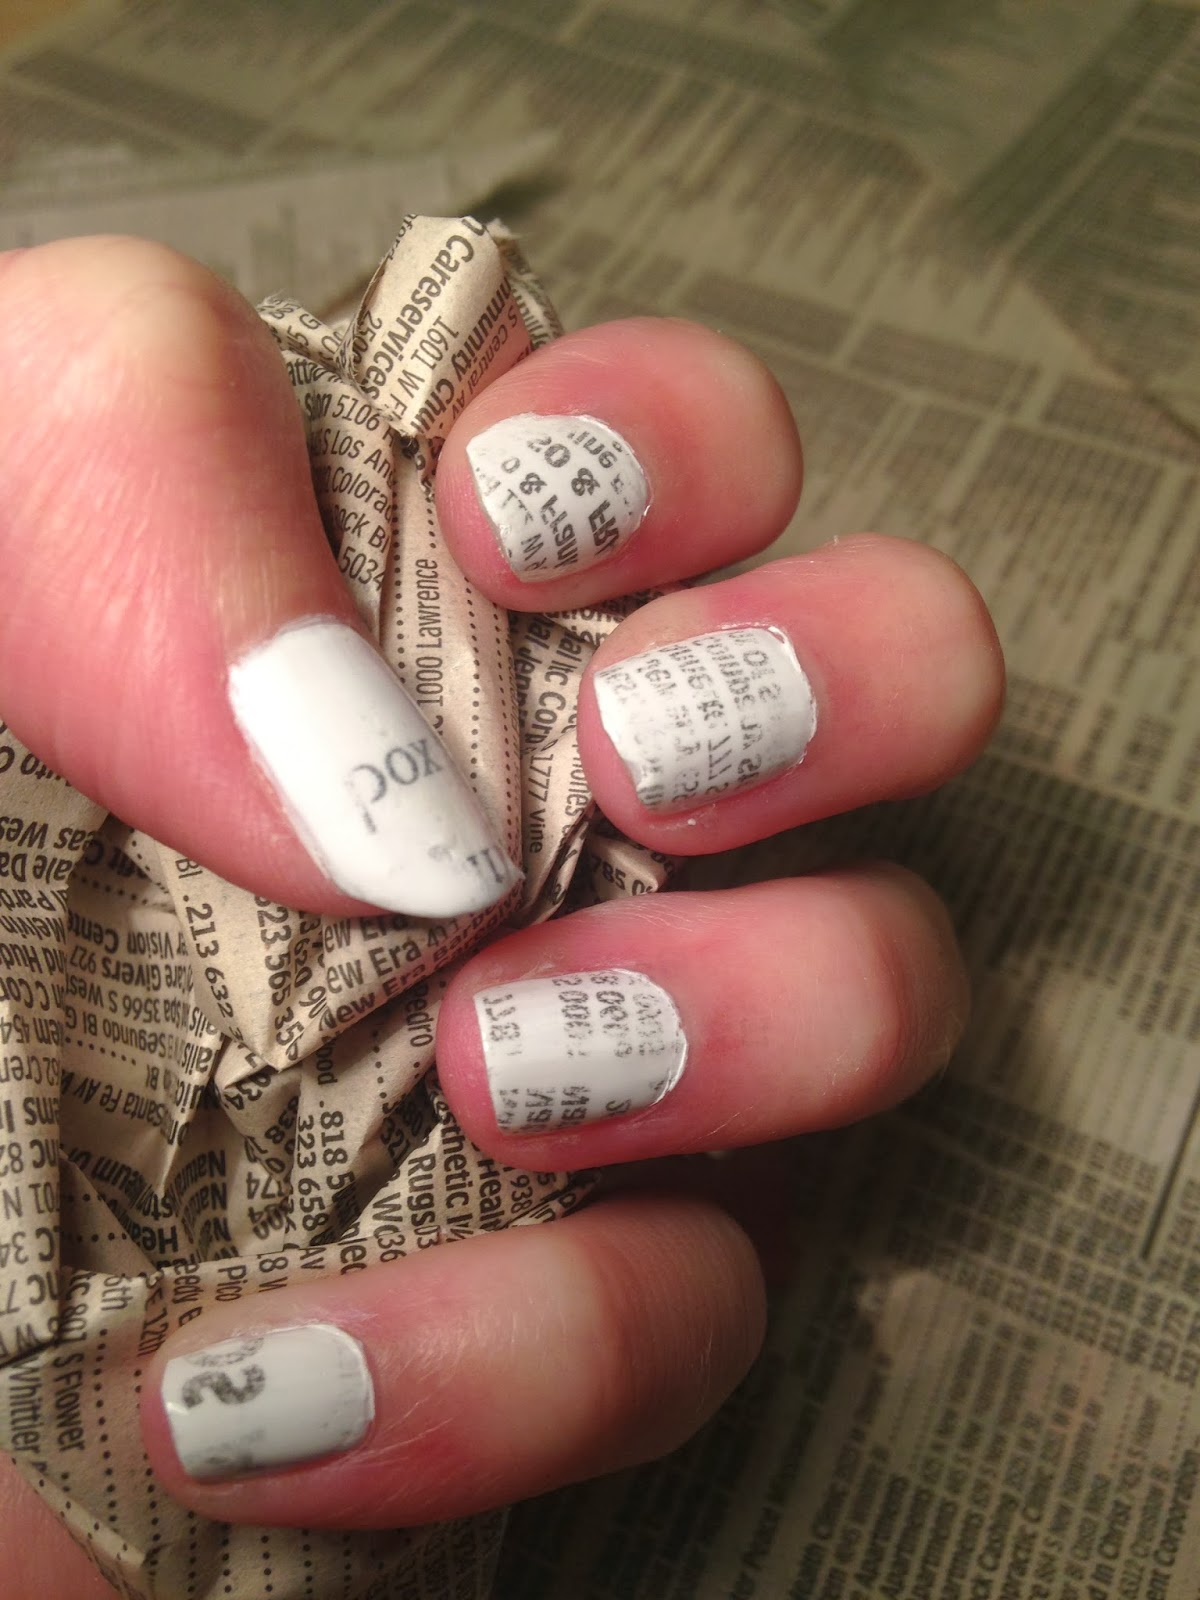 How To, How Hard, and How Much: Newspaper (or book) Nail Art